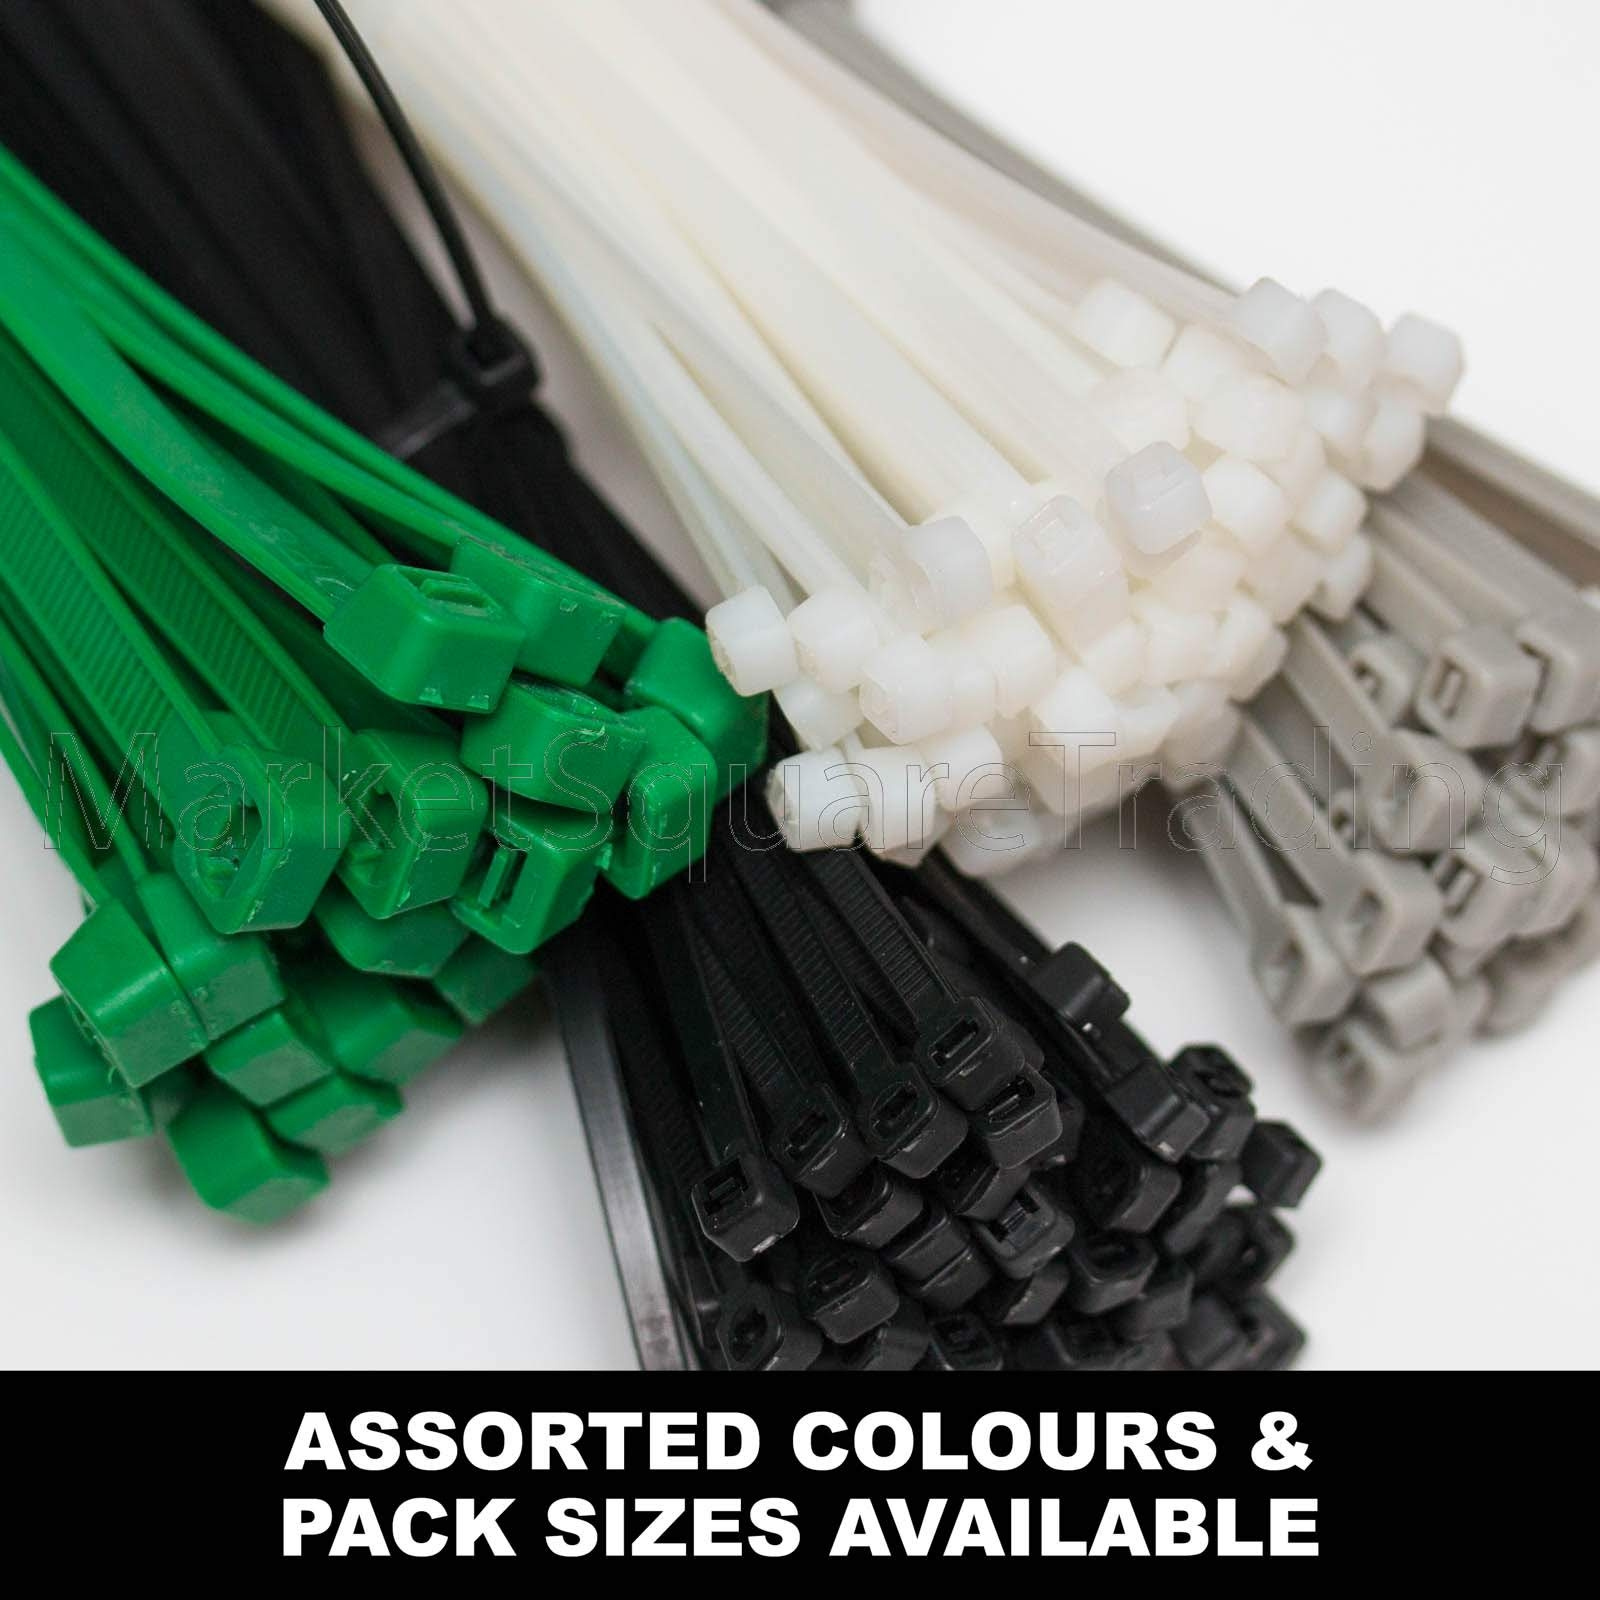 Heavy Duty Strong Nylon Cable Ties Tie Wraps Zip Ties Various Sizes Colours